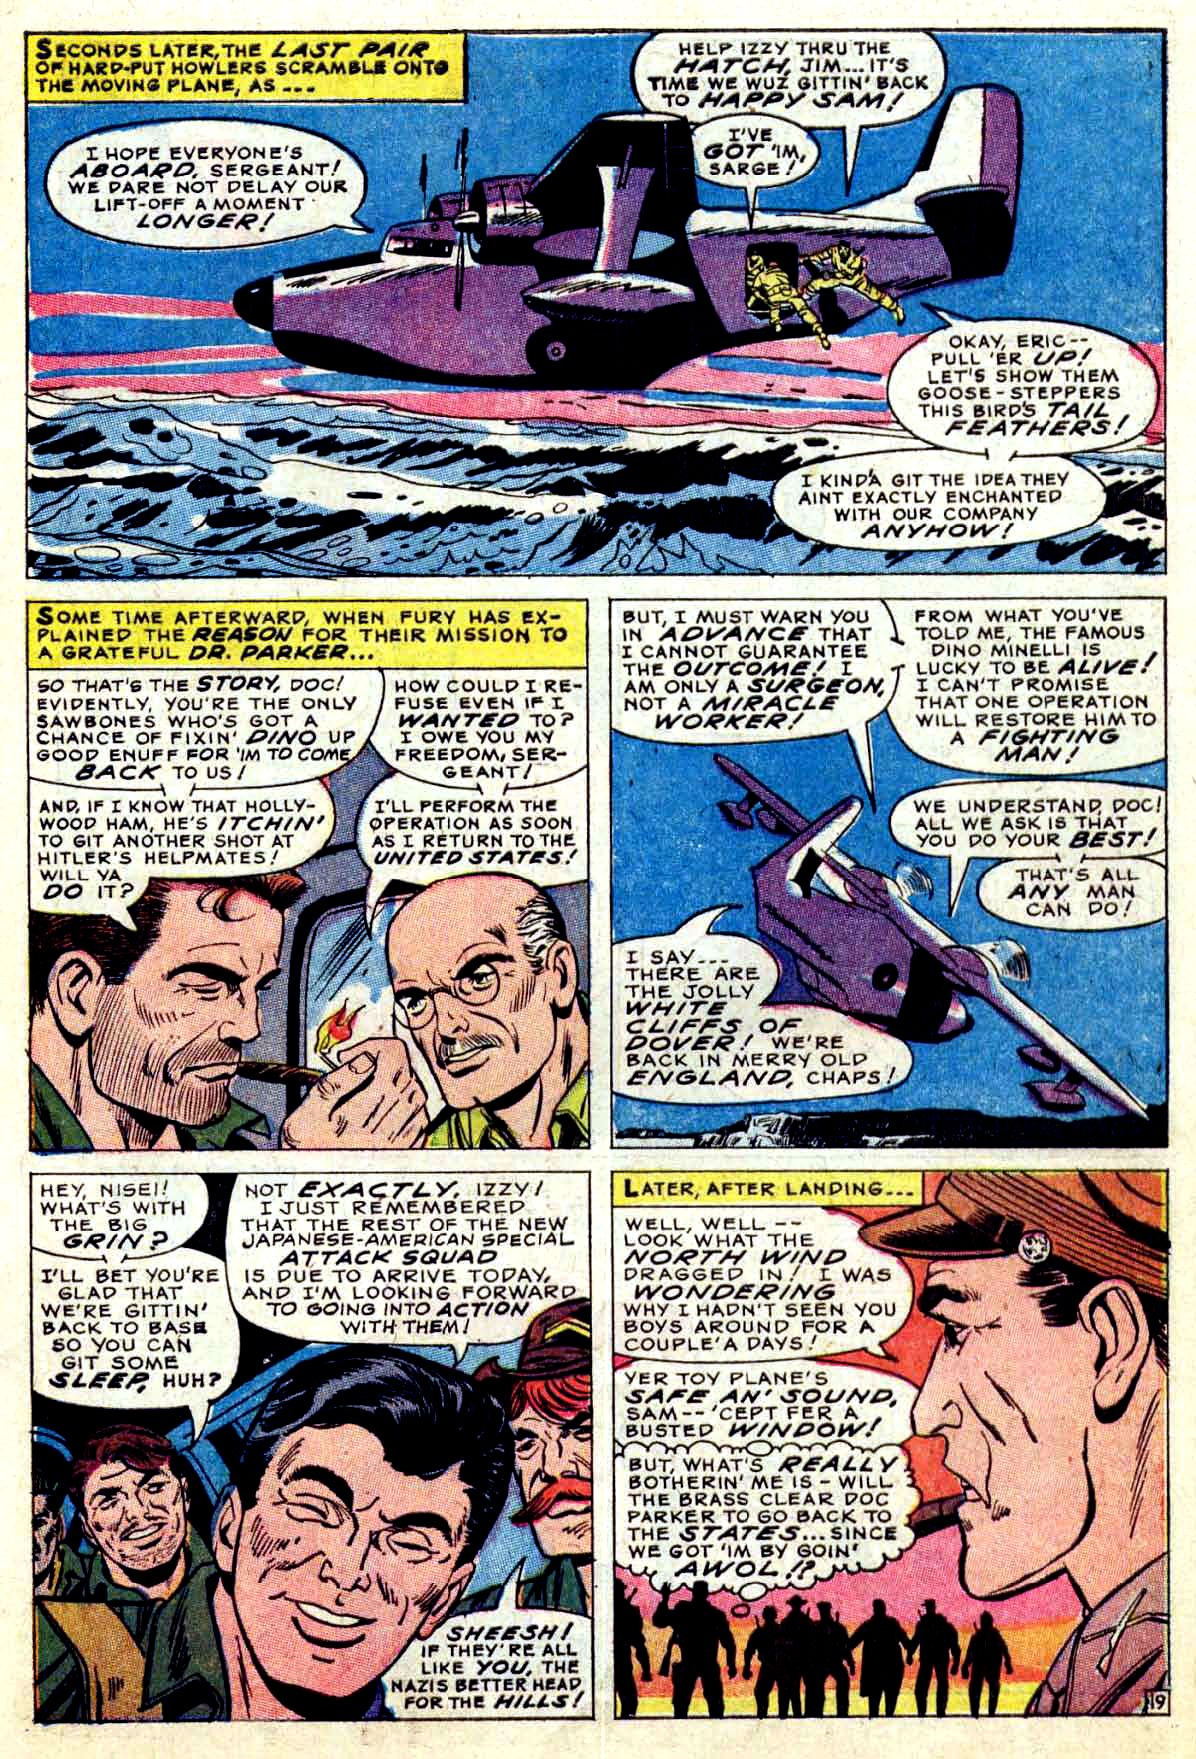 Read online Sgt. Fury comic -  Issue #38 - 27